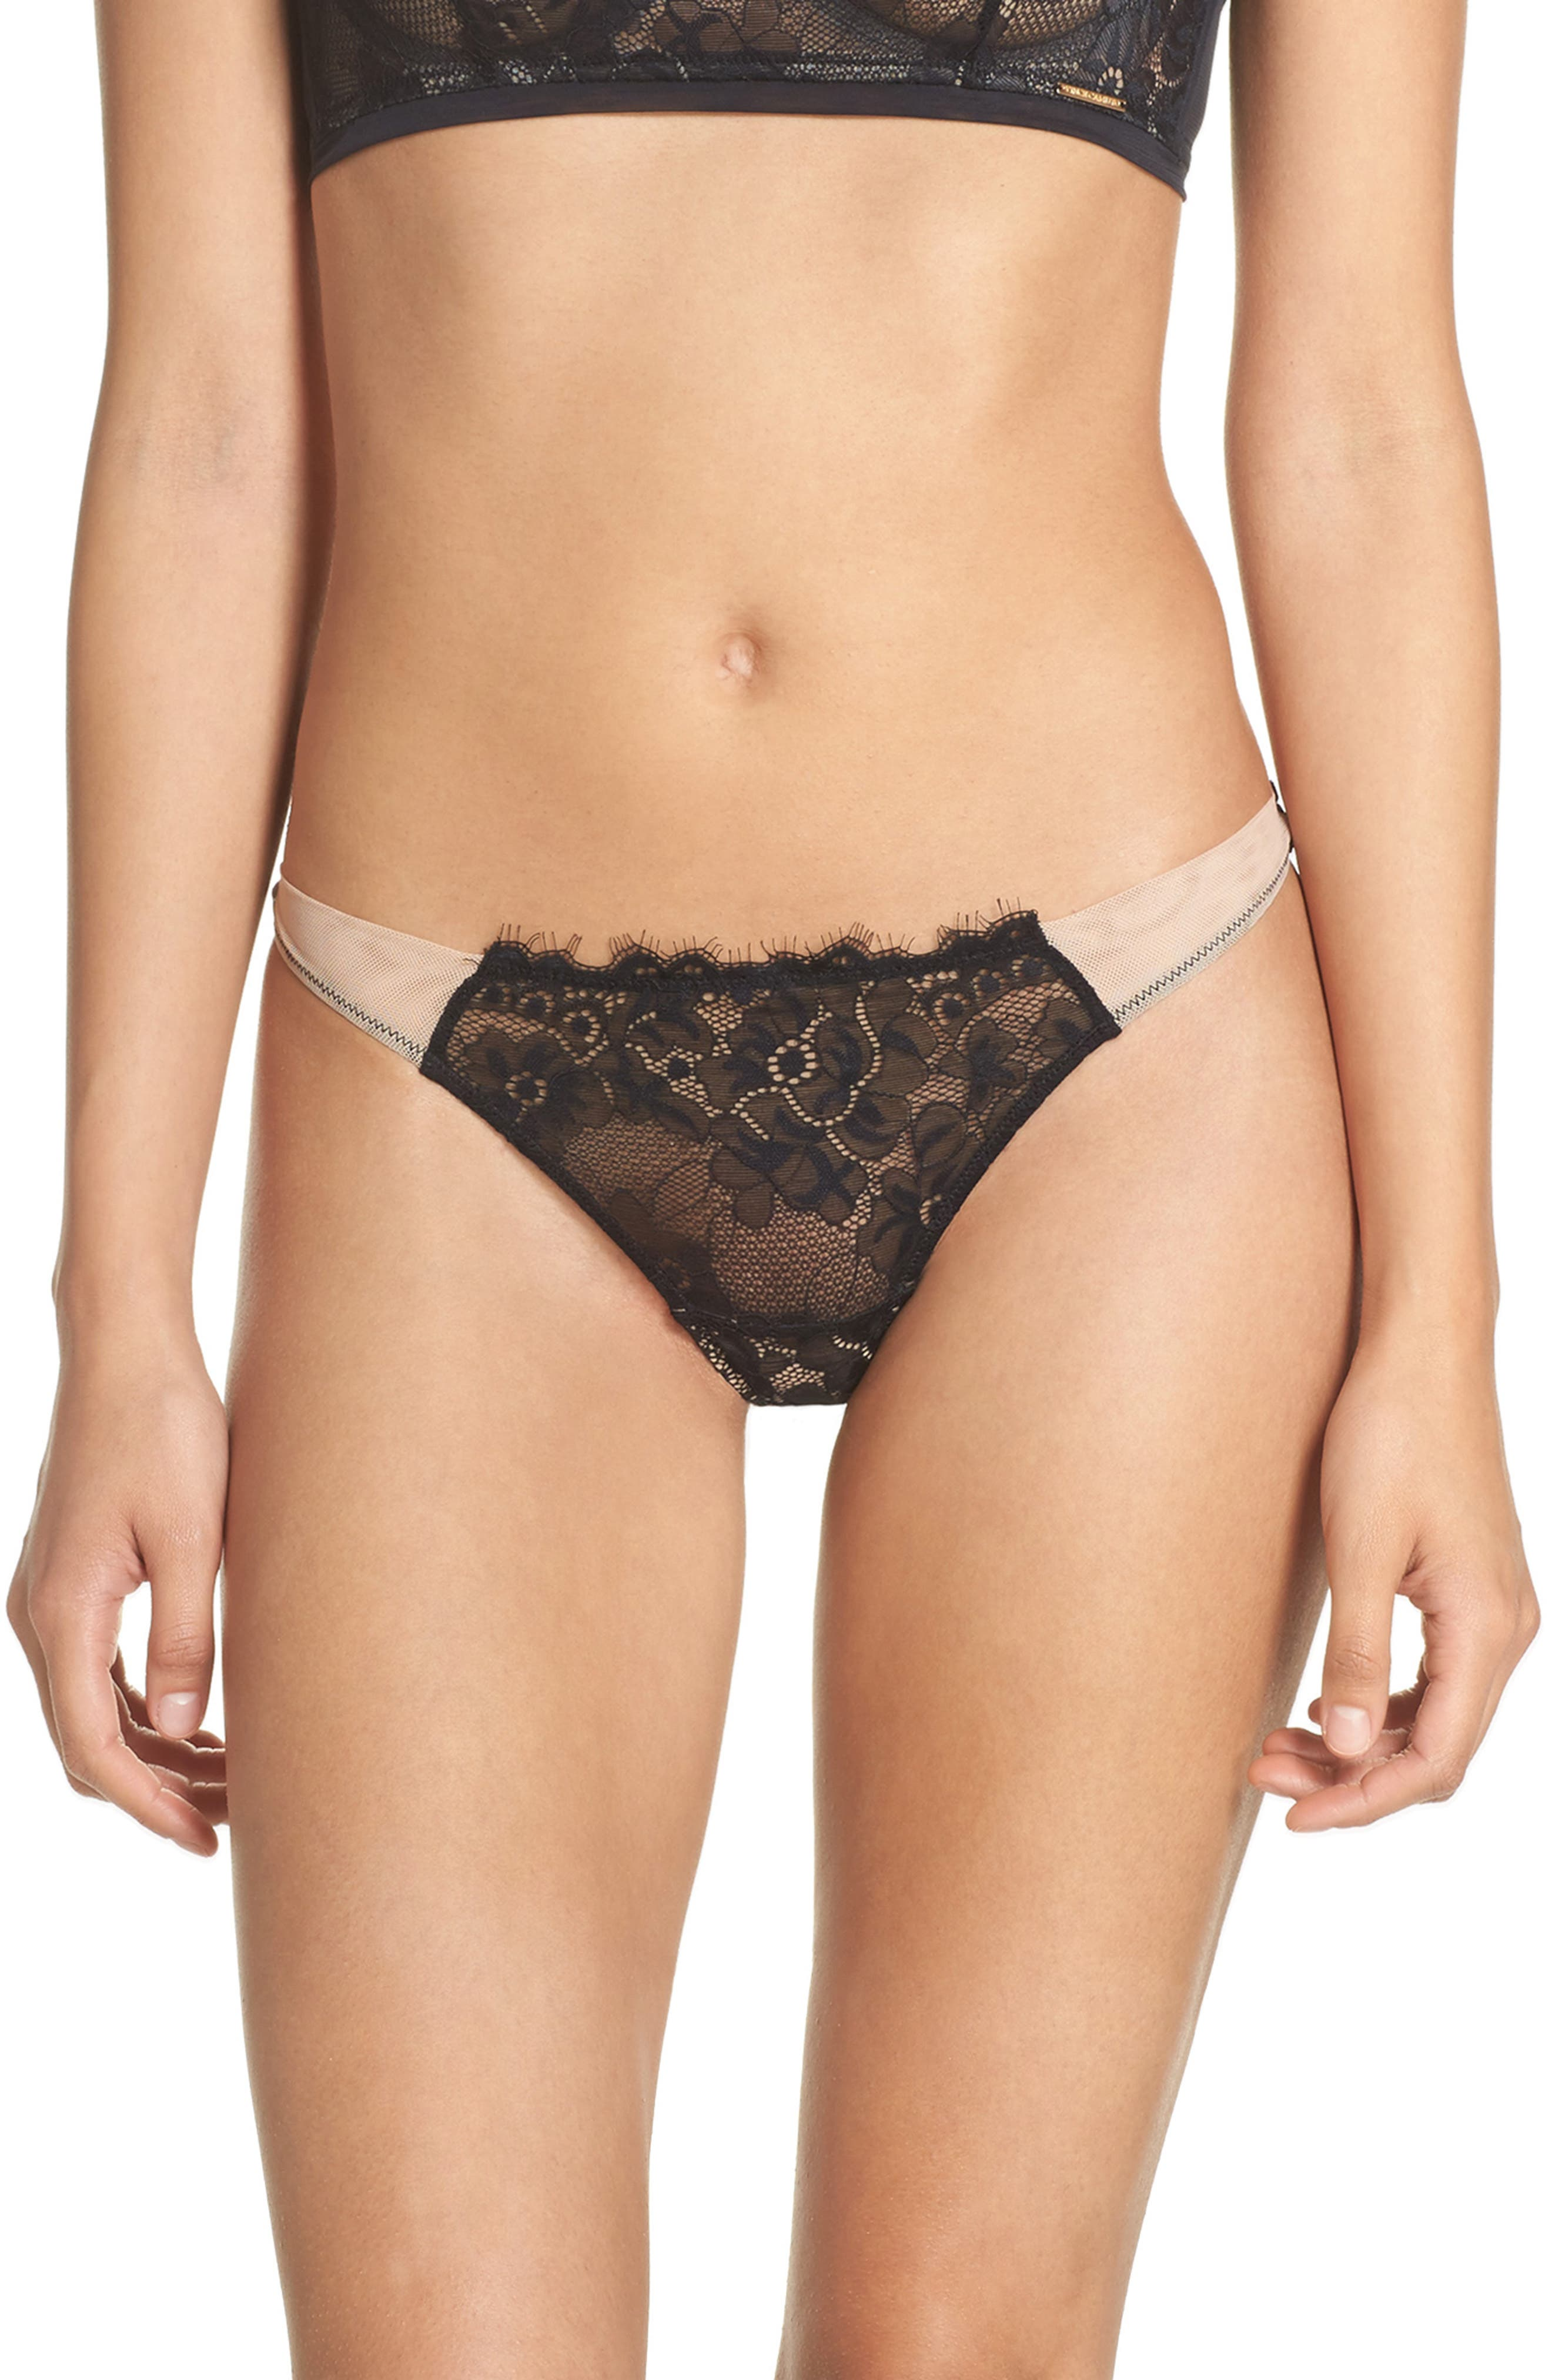 Vince Camuto Liza Thong (3 for $33)